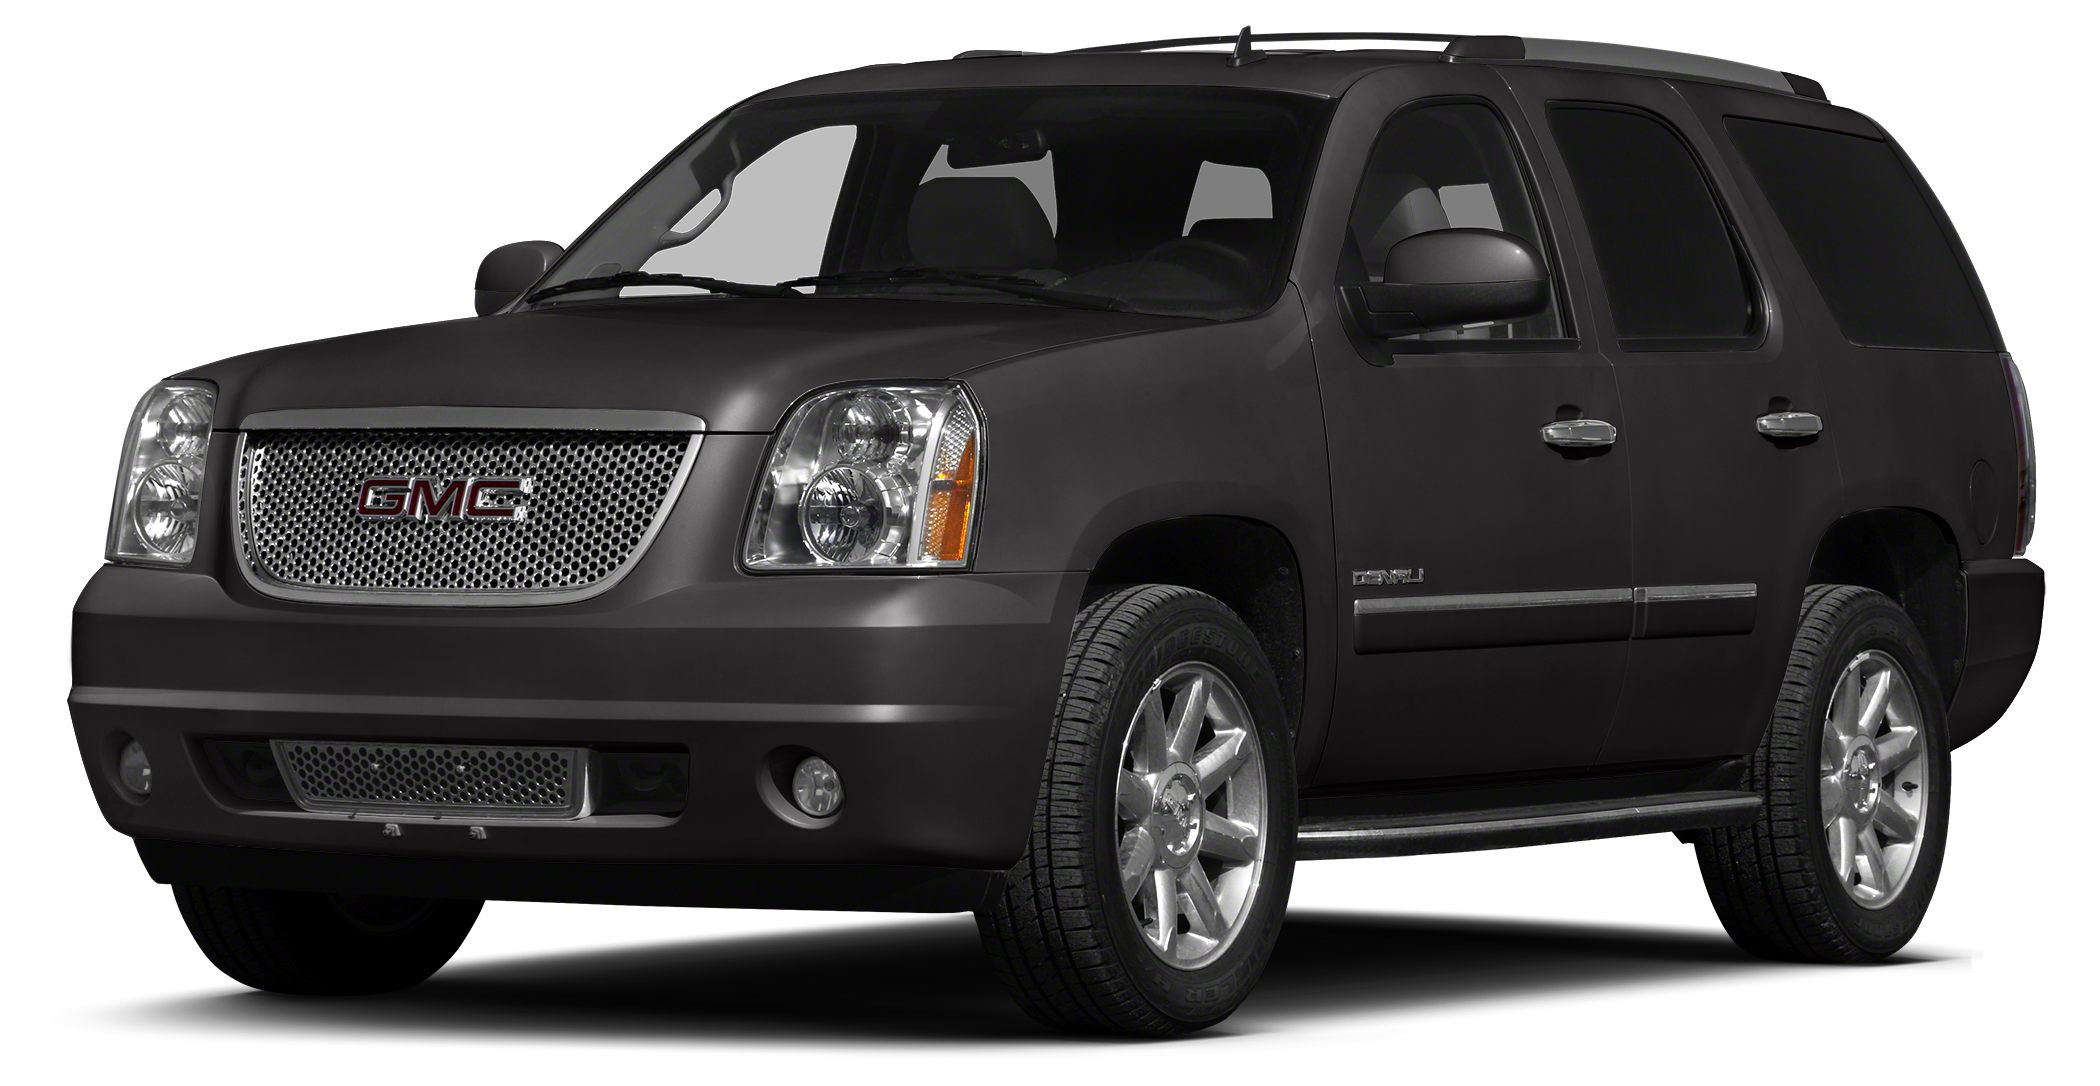 2014 GMC Yukon Denali A ONE OWNER LOCAL TRADE-IN Buy with confidence - local trade in Living in